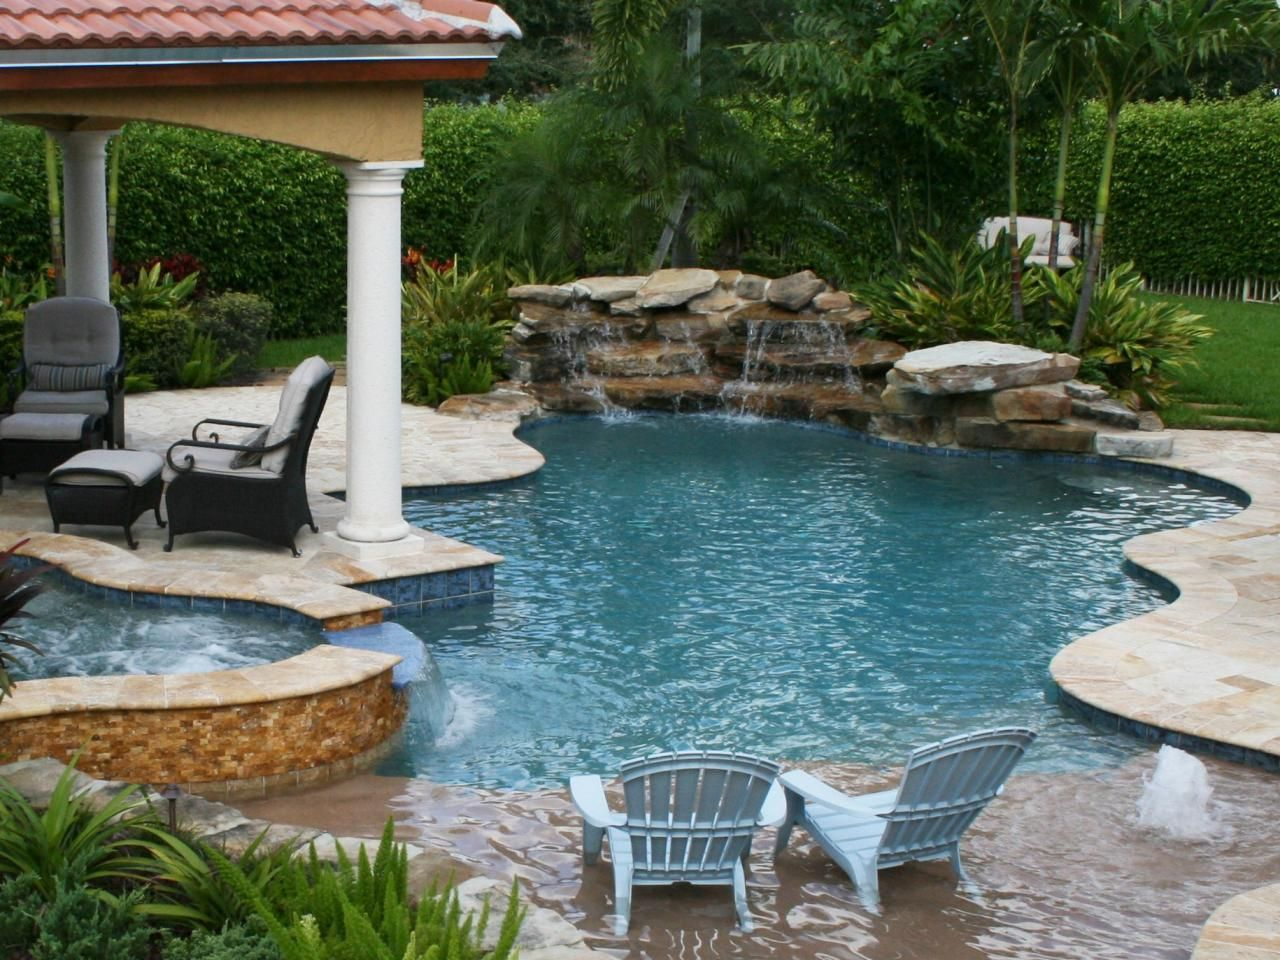 Dreamy pool design ideas backyard pool designs and for Garden oases pool entrance